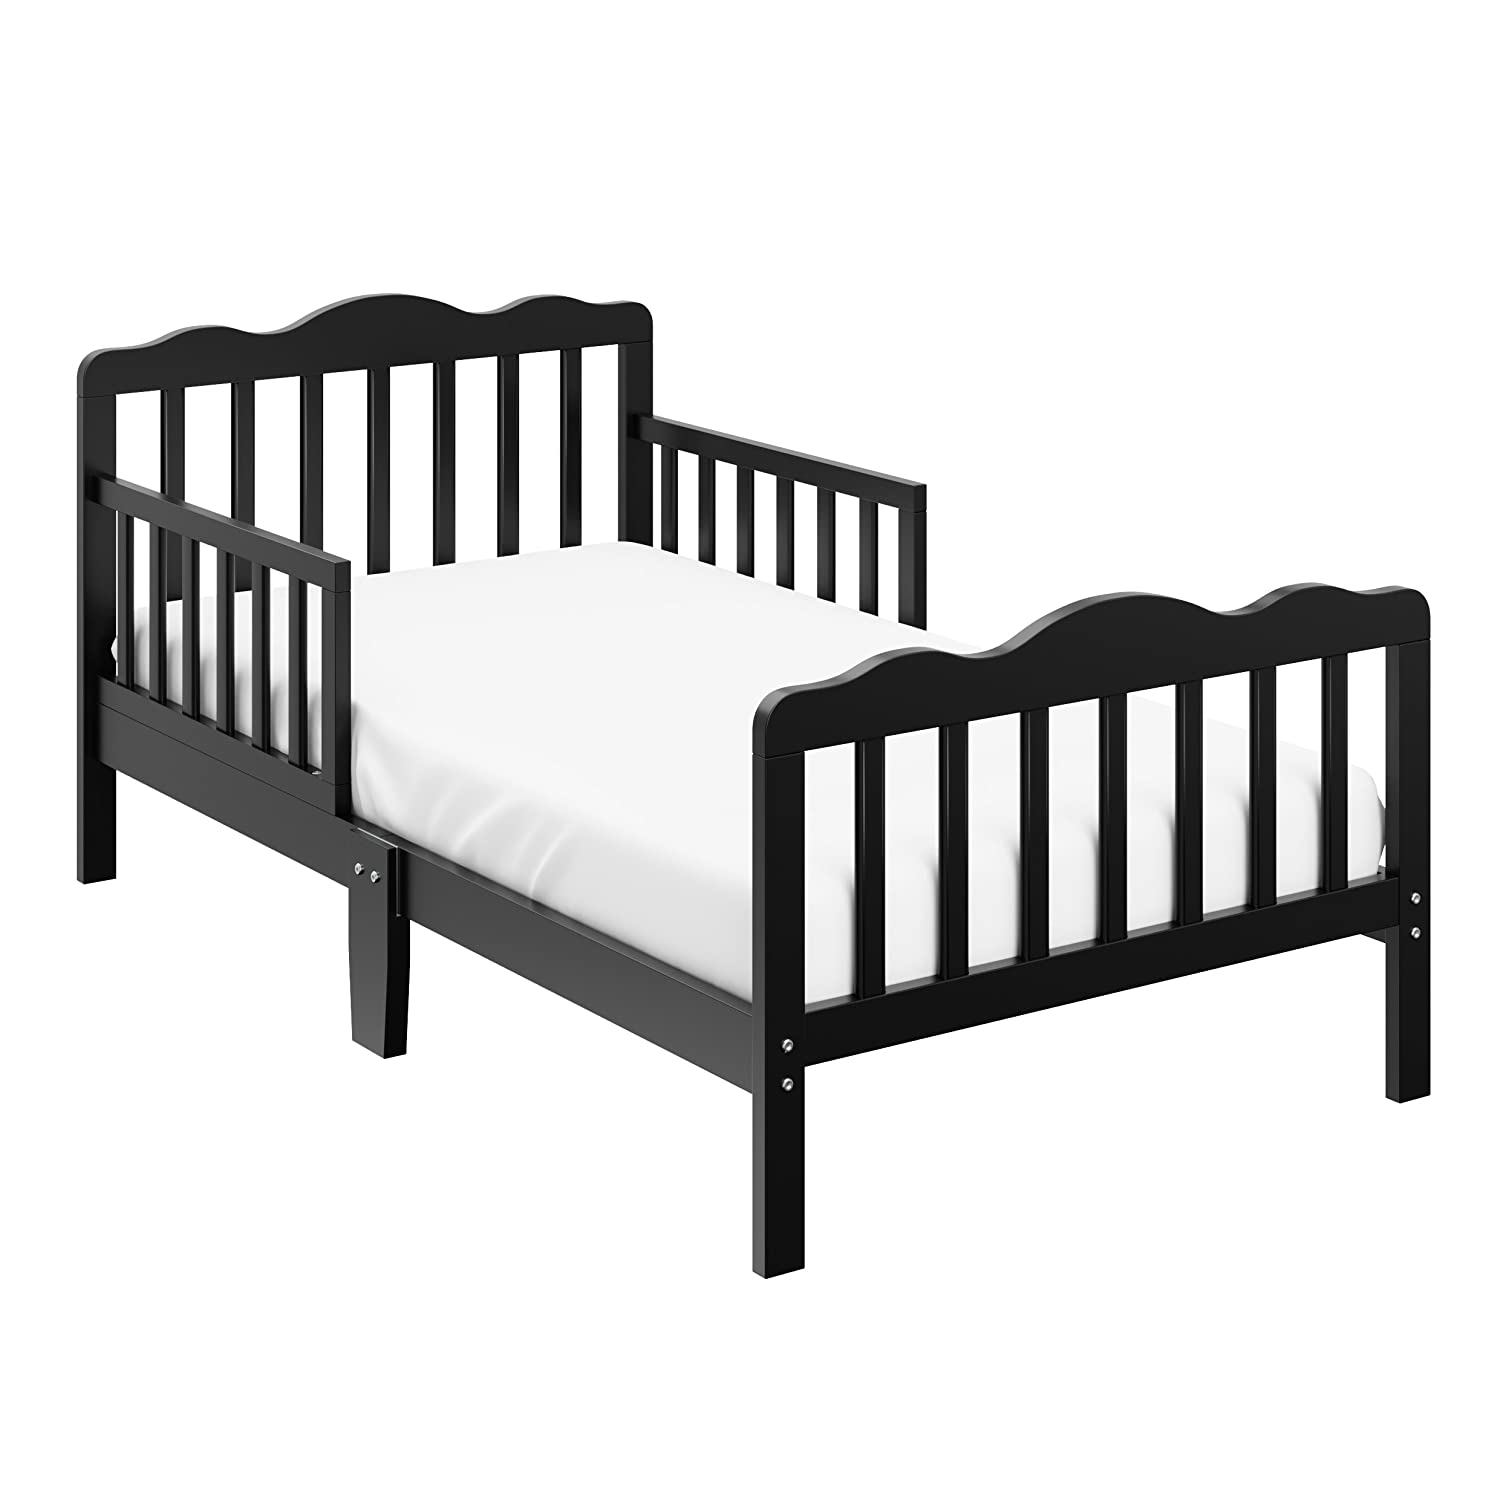 Storkcraft Hillside Toddler Bed Black Fits Standard-Size Toddler Mattress, Guardrails on Both Sides for Added Protection, Meets or Exceeds all Federal Safety Standards, Pine & Composite Construction 05251-10B